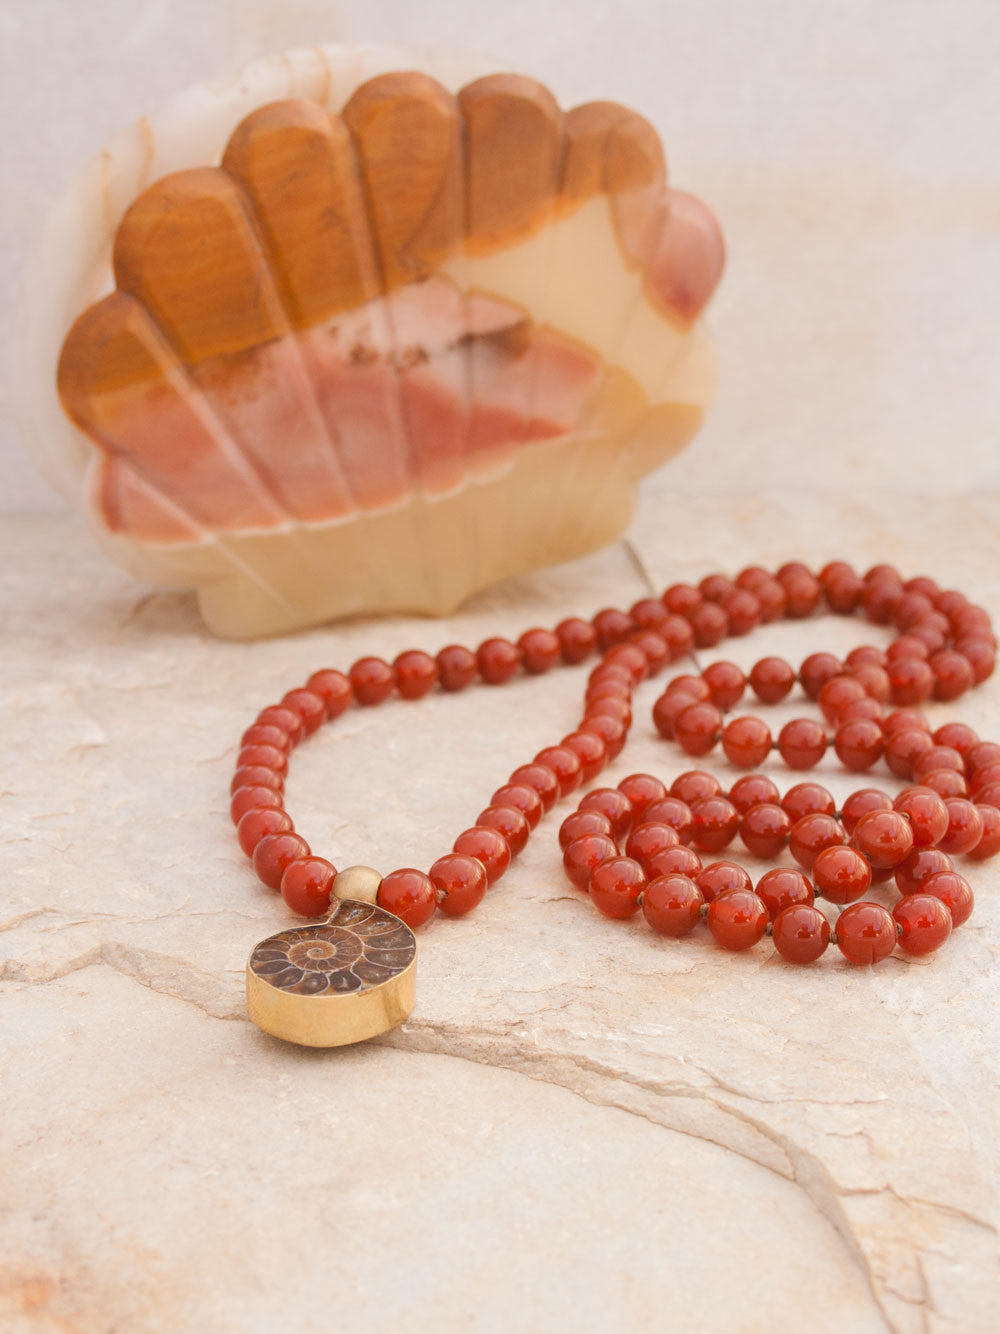 To Infinity... a 108 bead Mala in spectacular sienna onyx, 10mm, with brass Guru bead and ammonite nautilus pendant: full view.